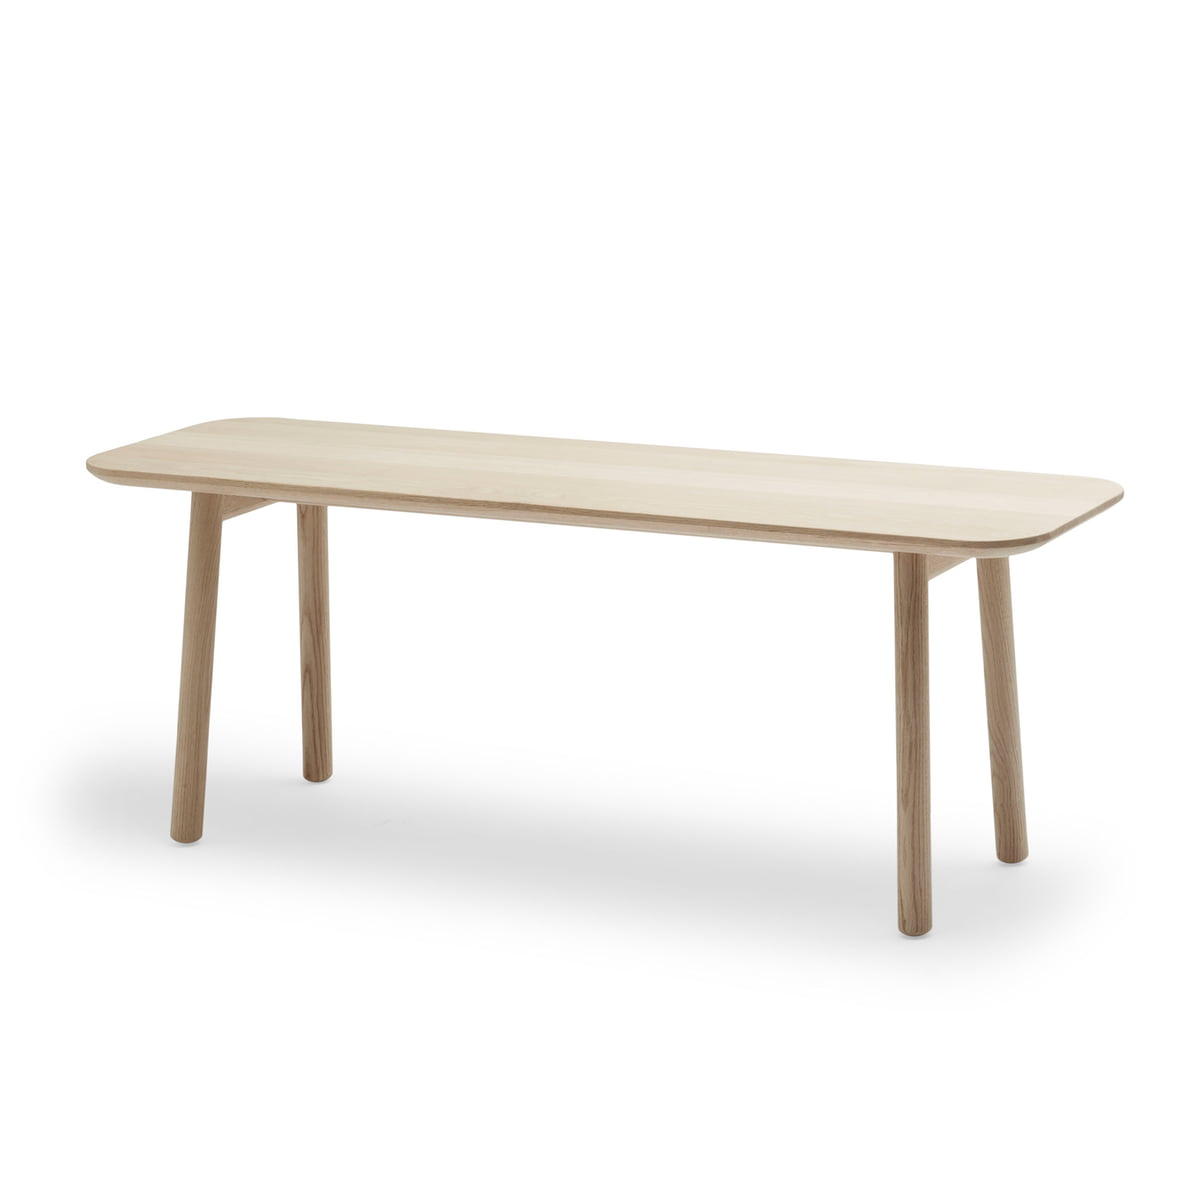 Wooden bench hven by skagerak connox shop Oak bench